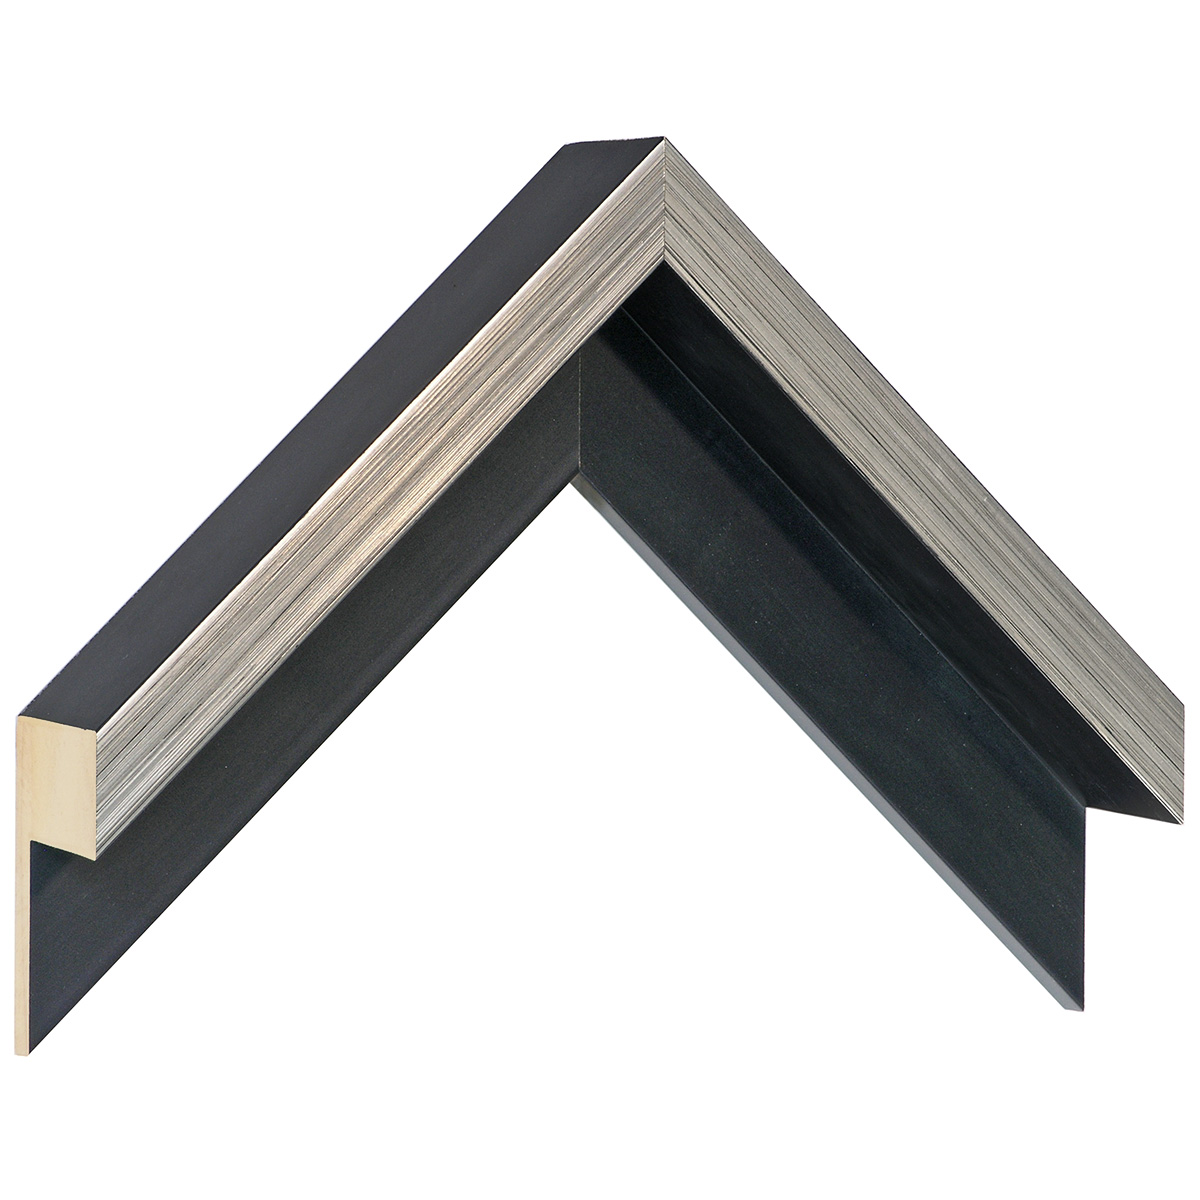 Moulding Jelutong L shape, Width 45mm Height 55 Black-Silver